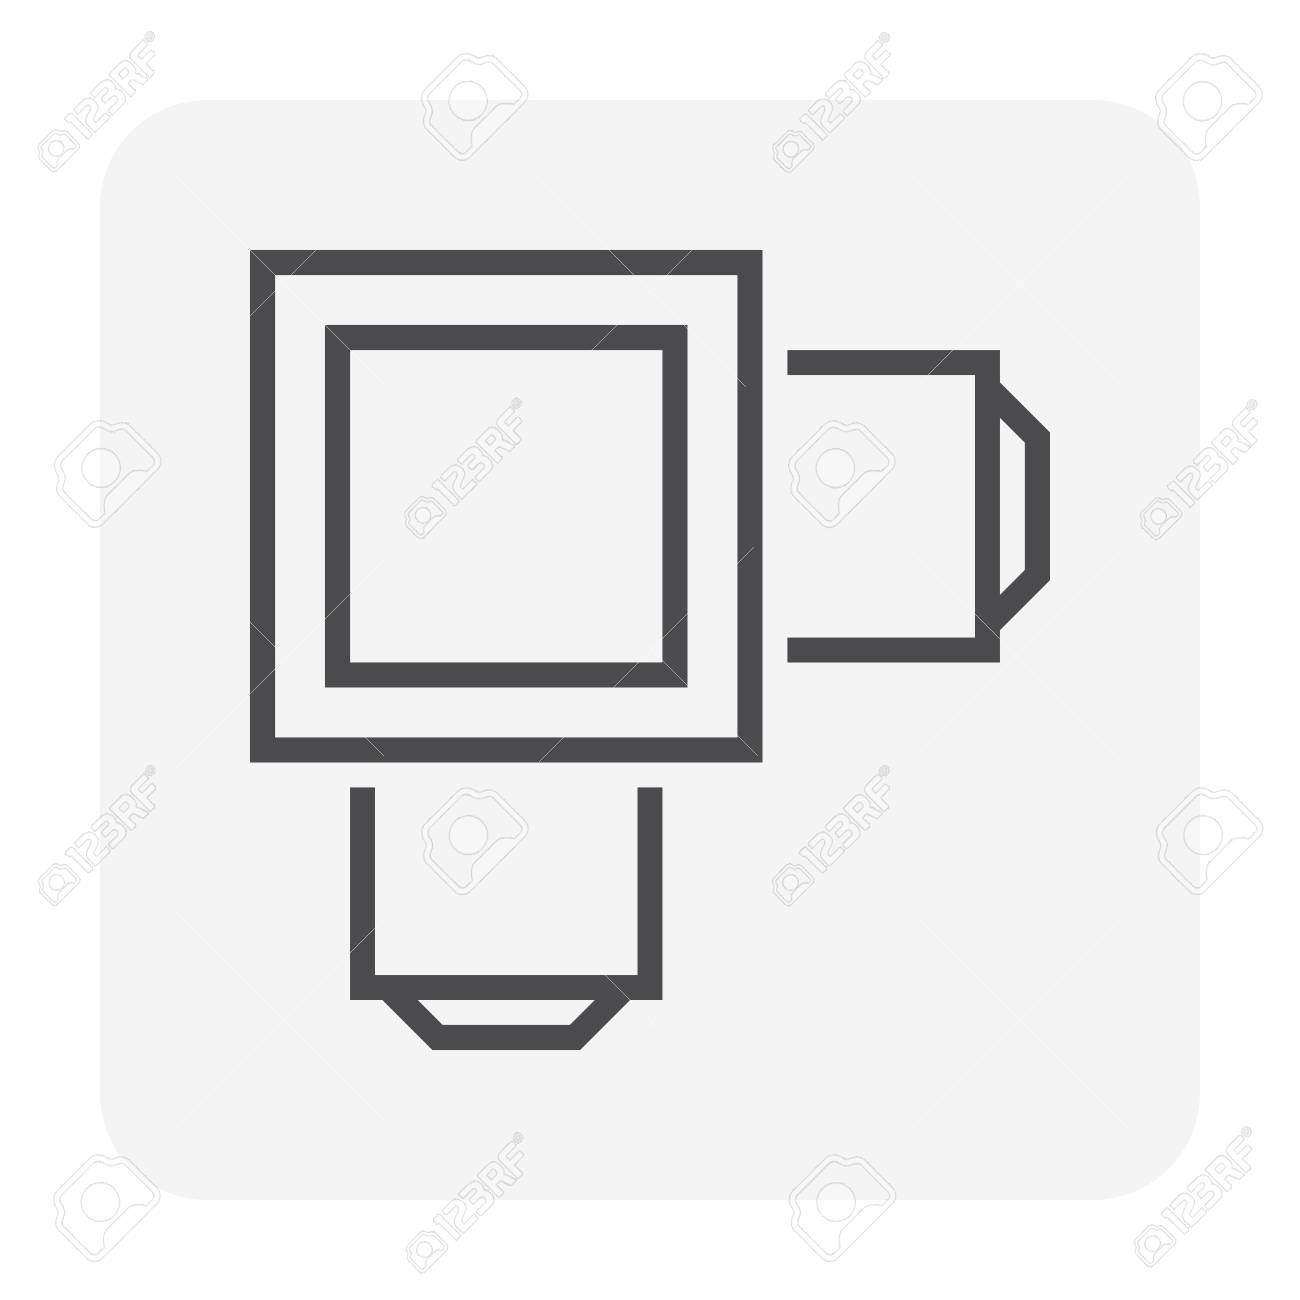 Sewer pipe icon, 64x64 perfect pixel and editable stroke